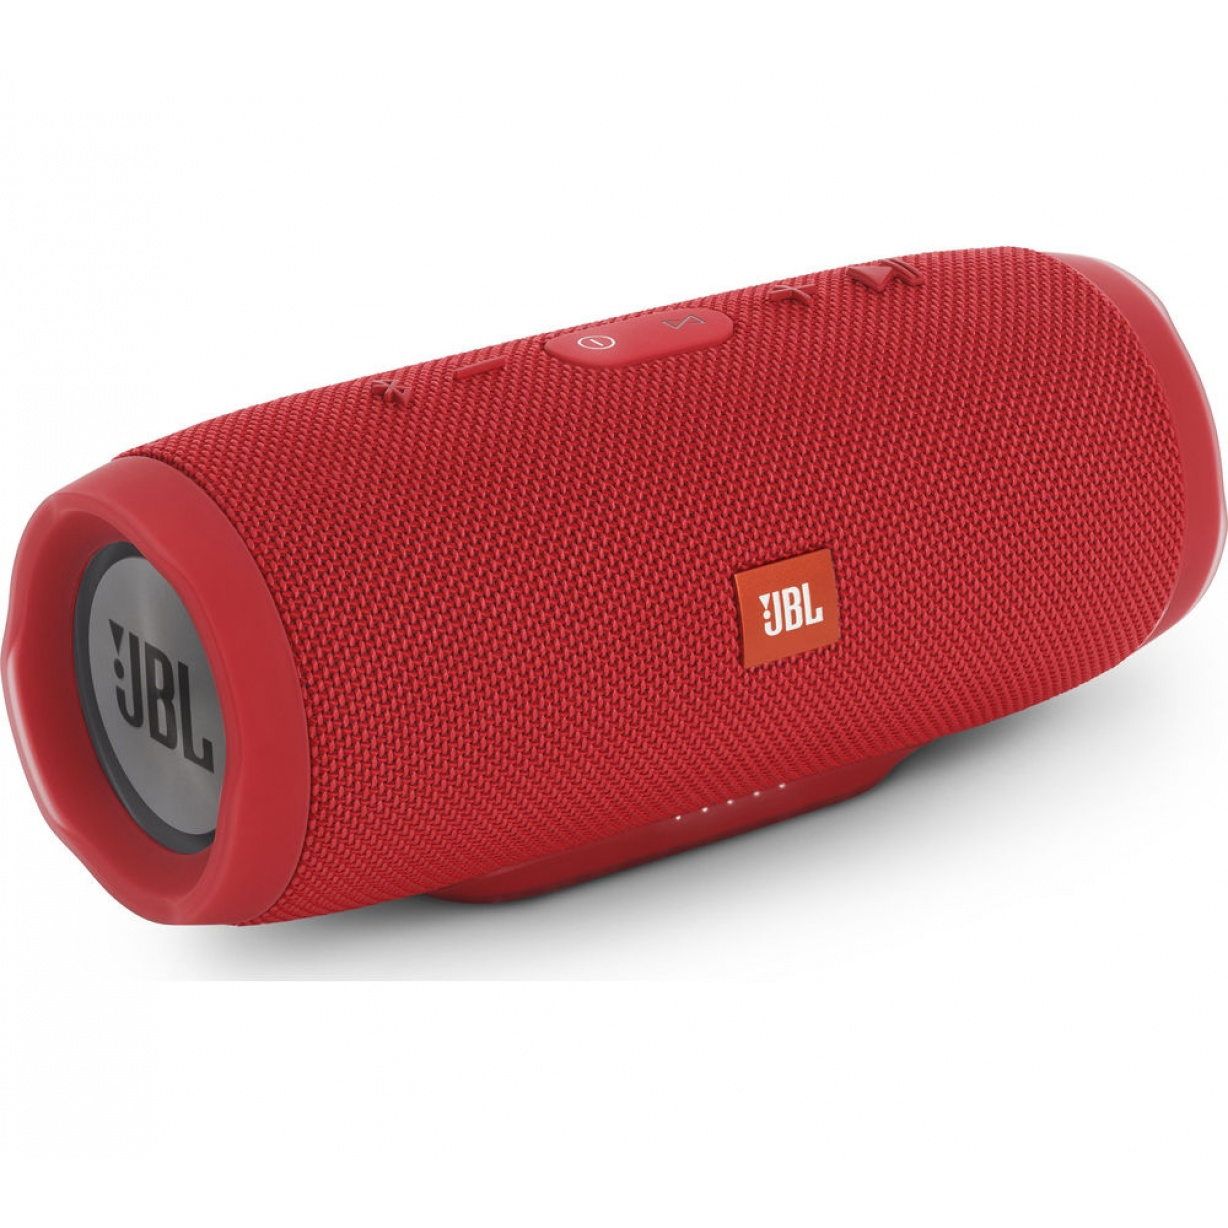 Kolonėlė JBL Charge 3 Bluetooth Speaker 1.0 Red 2 x 10W